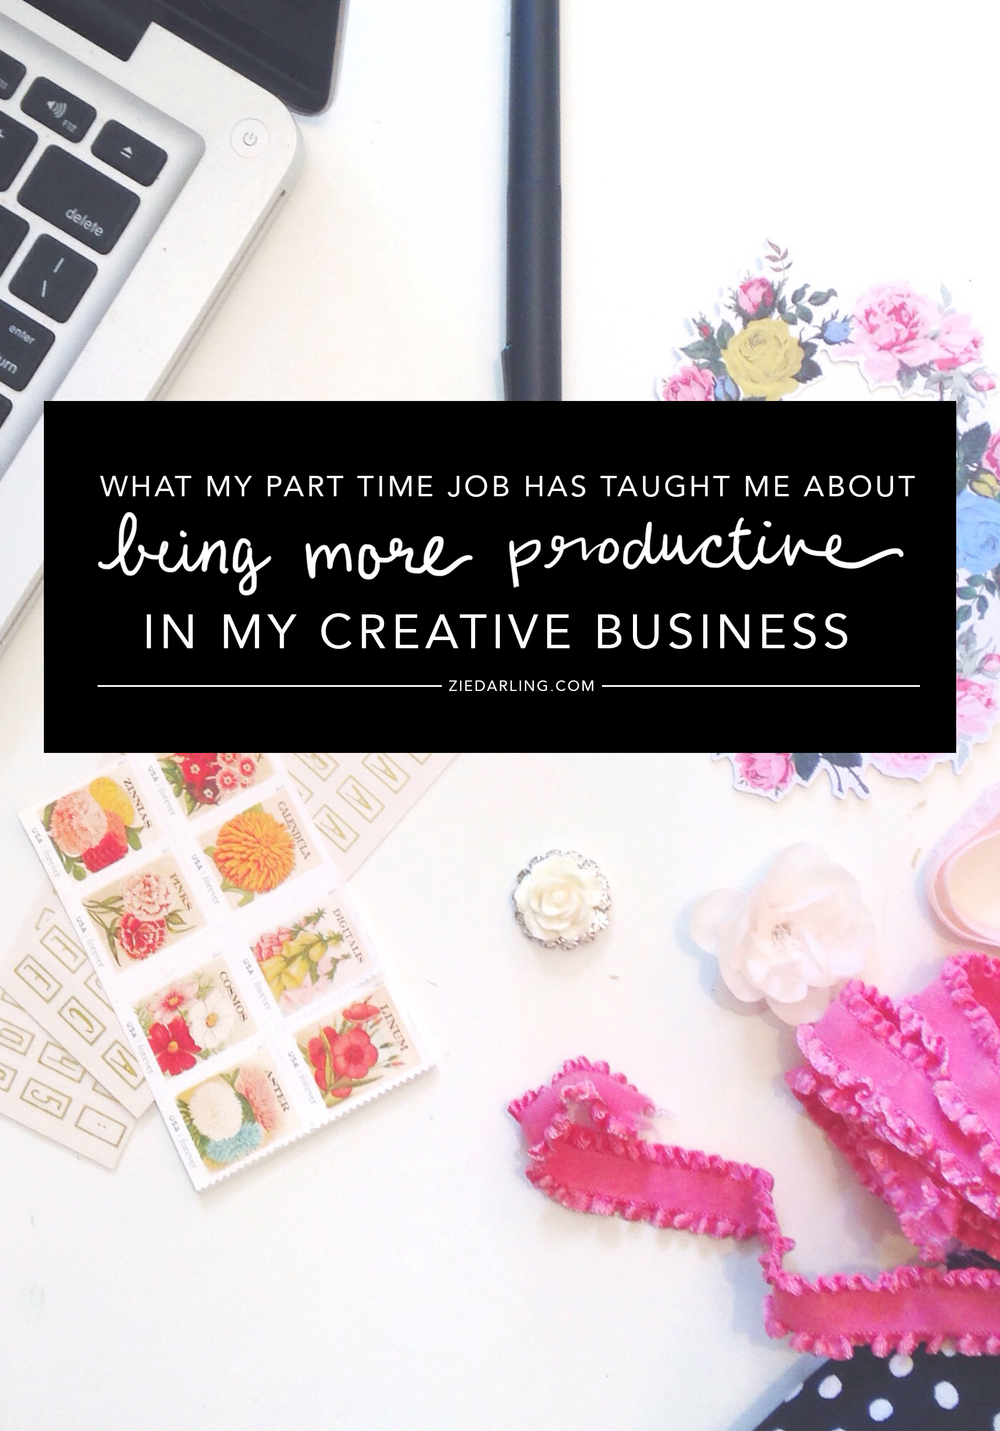 ZieDarling.com | What my part time job has taught me about being more productive in my creative business